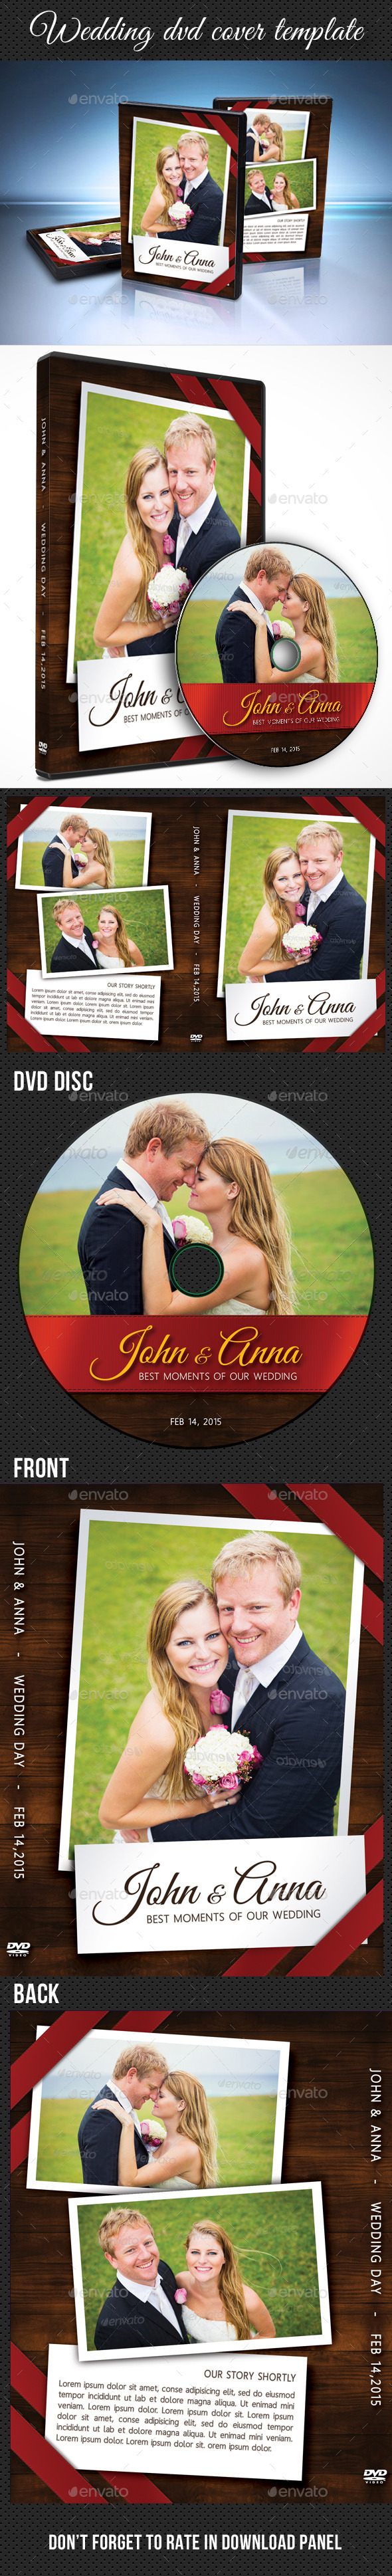 GraphicRiver Wedding DVD Cover Template 10 10229045